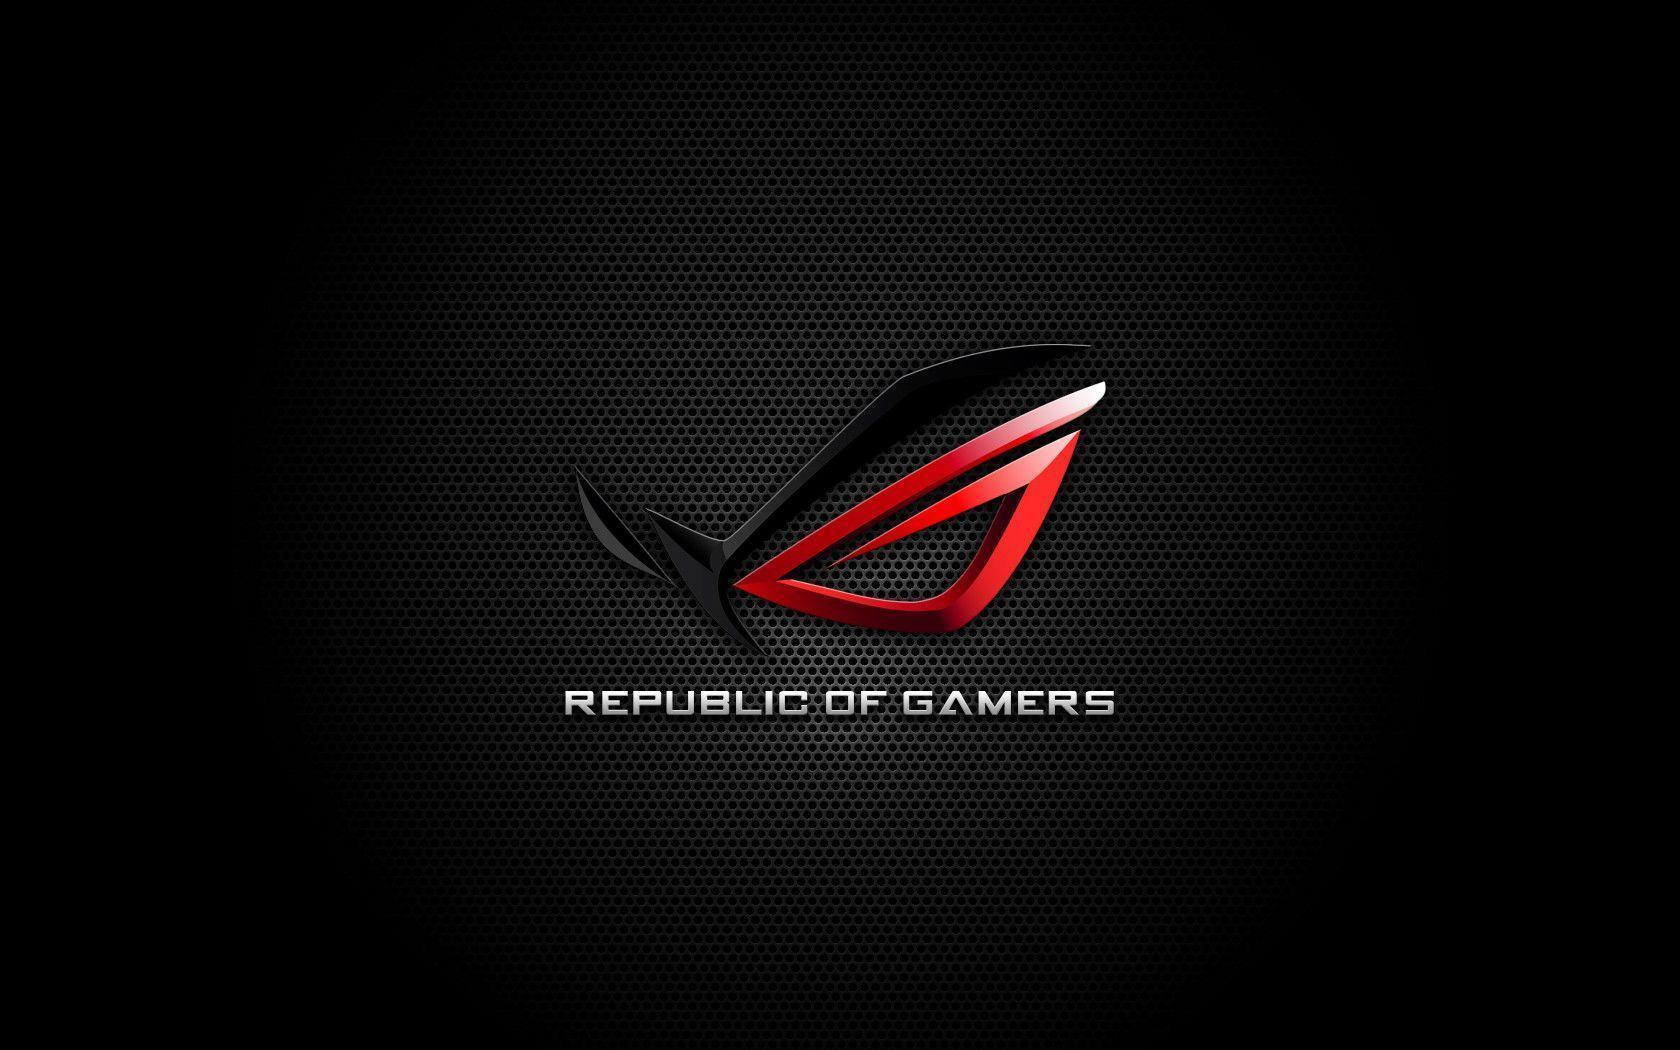 Republic Of Gamers Wallpapers Top Free Republic Of Gamers